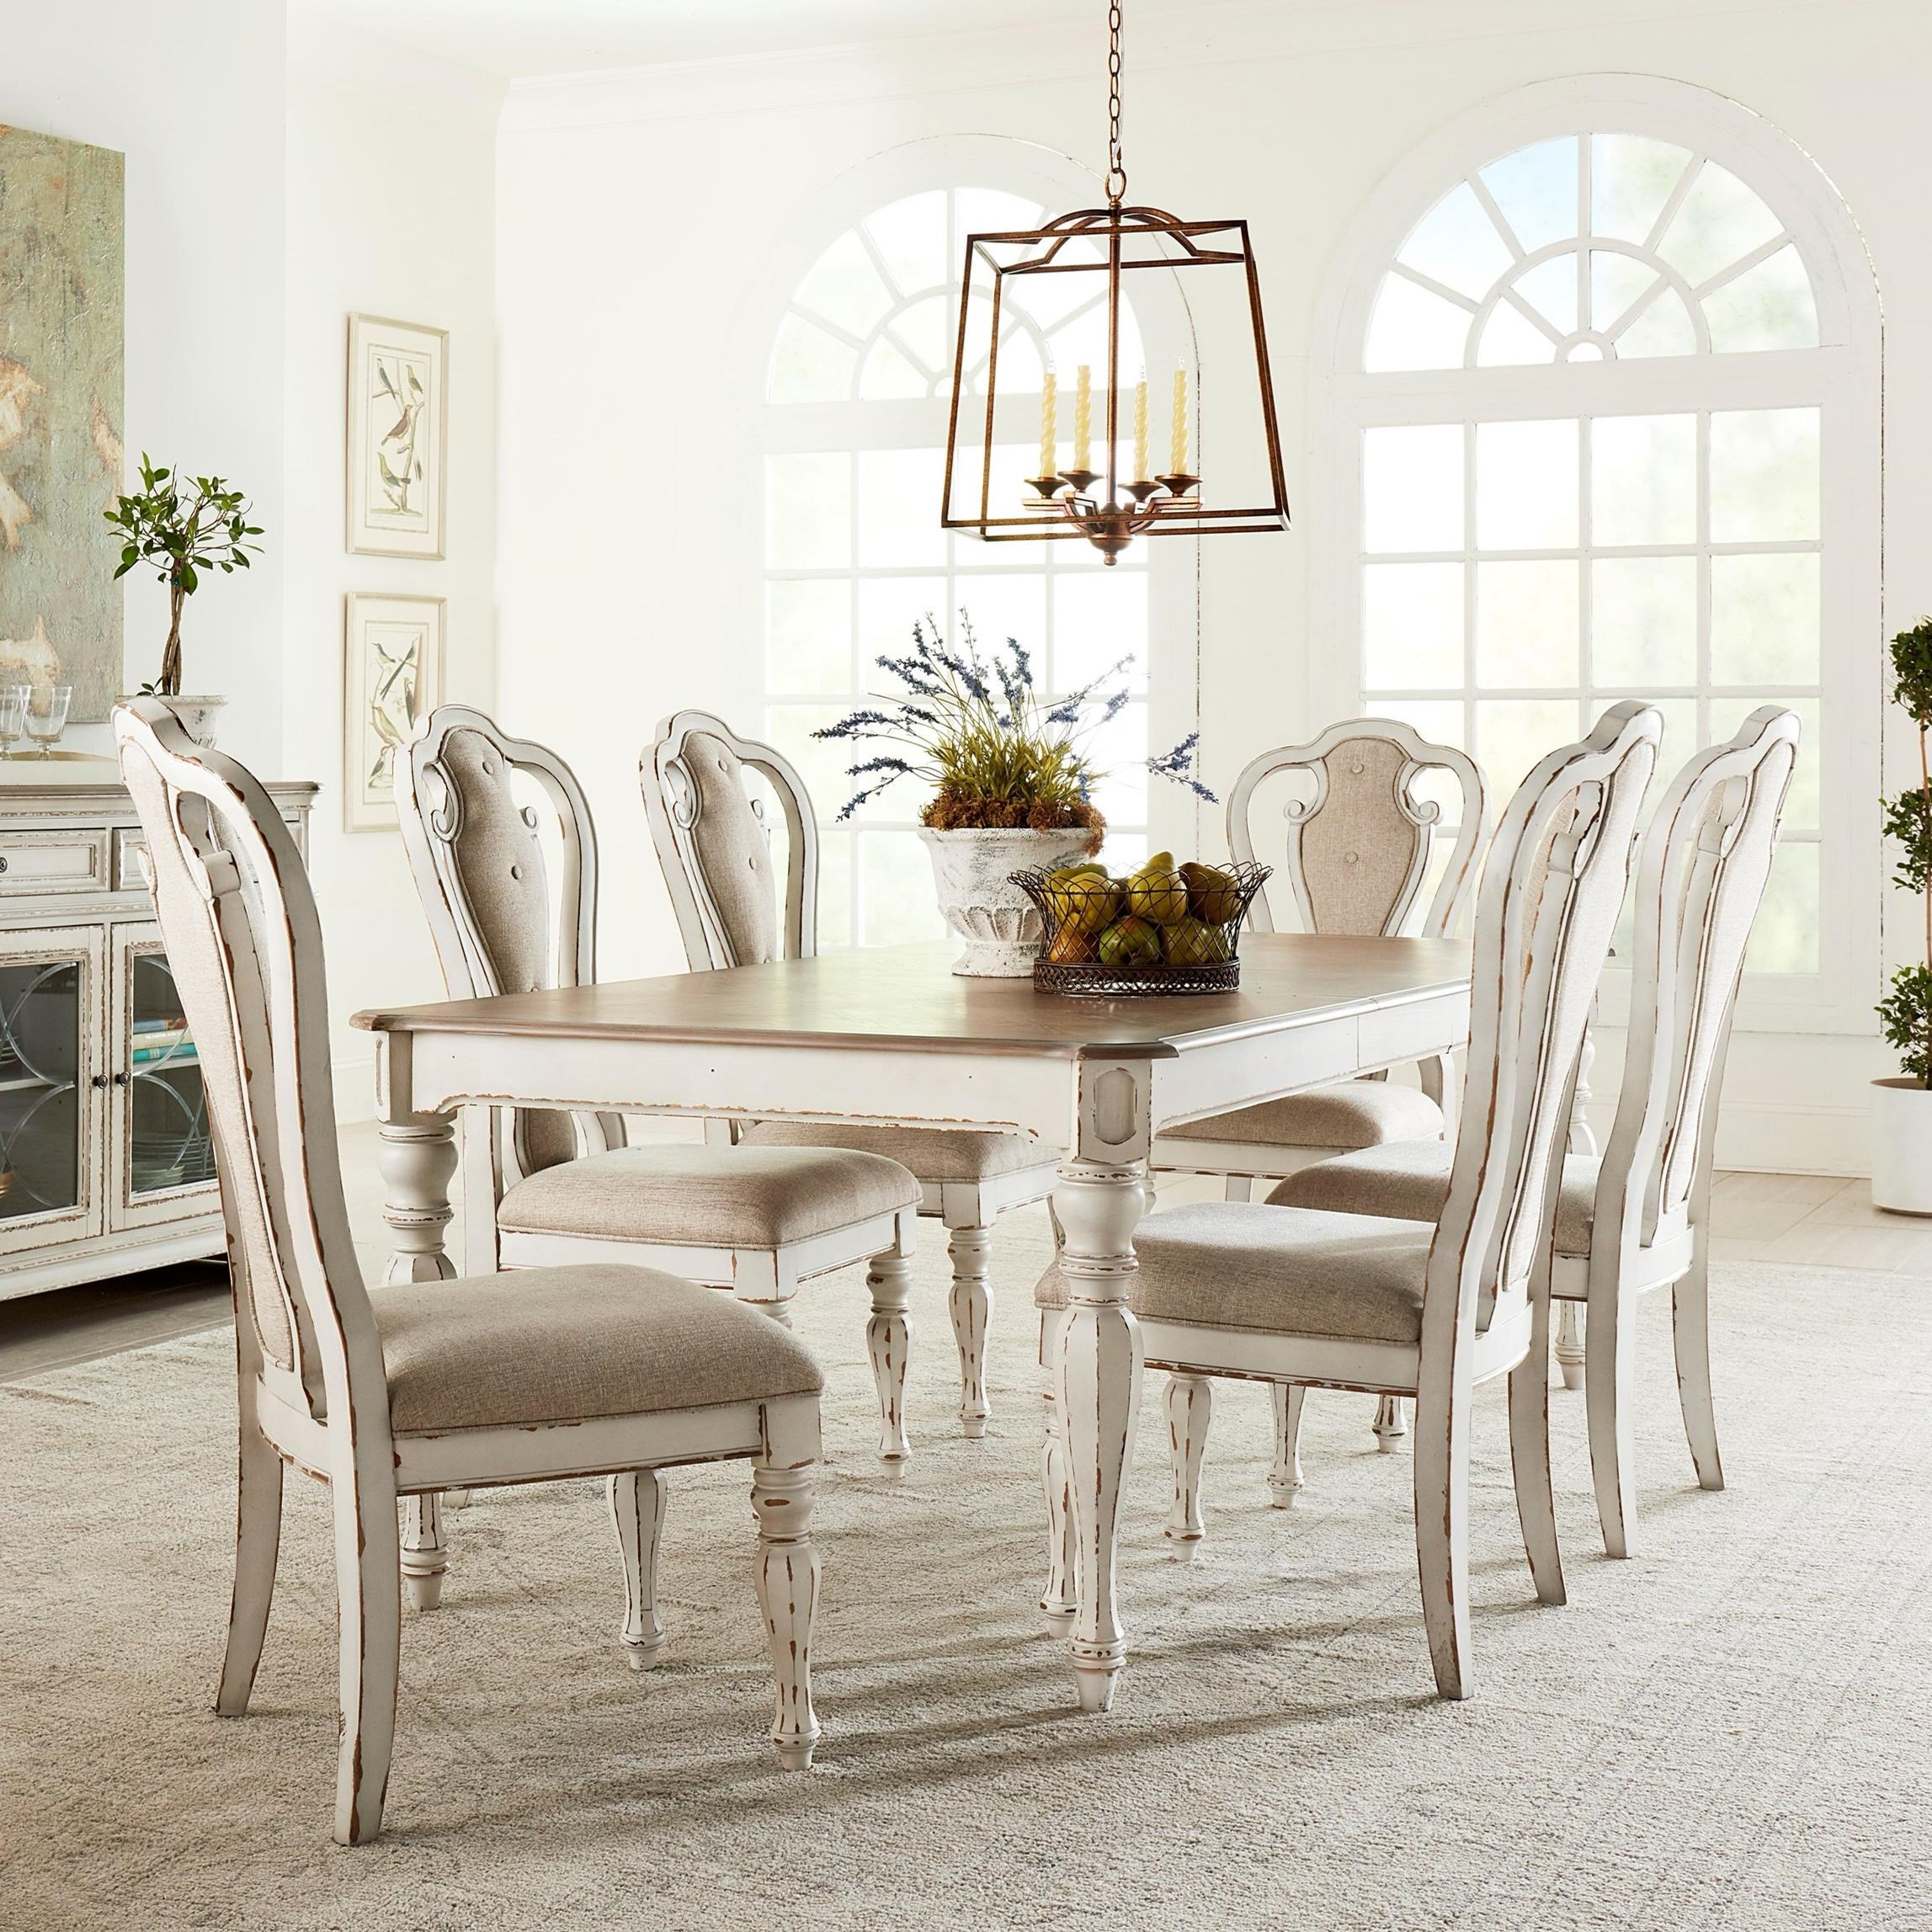 Dining Room Sets 6 Chairs: Dining Room Set With Six Side Chairs By Standard Furniture